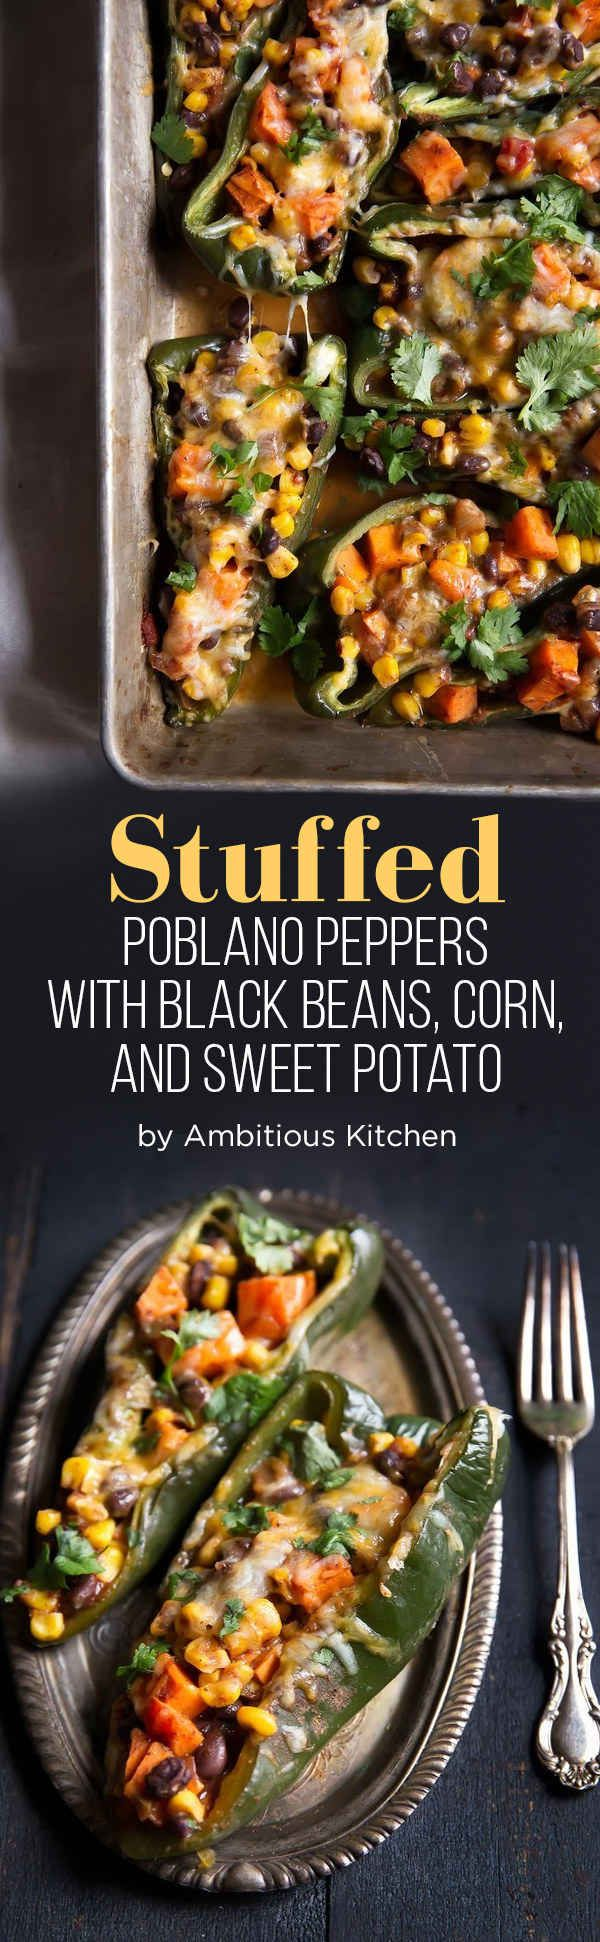 Stuffed Poblano Peppers with Black Beans, Corn, and Sweet Potato